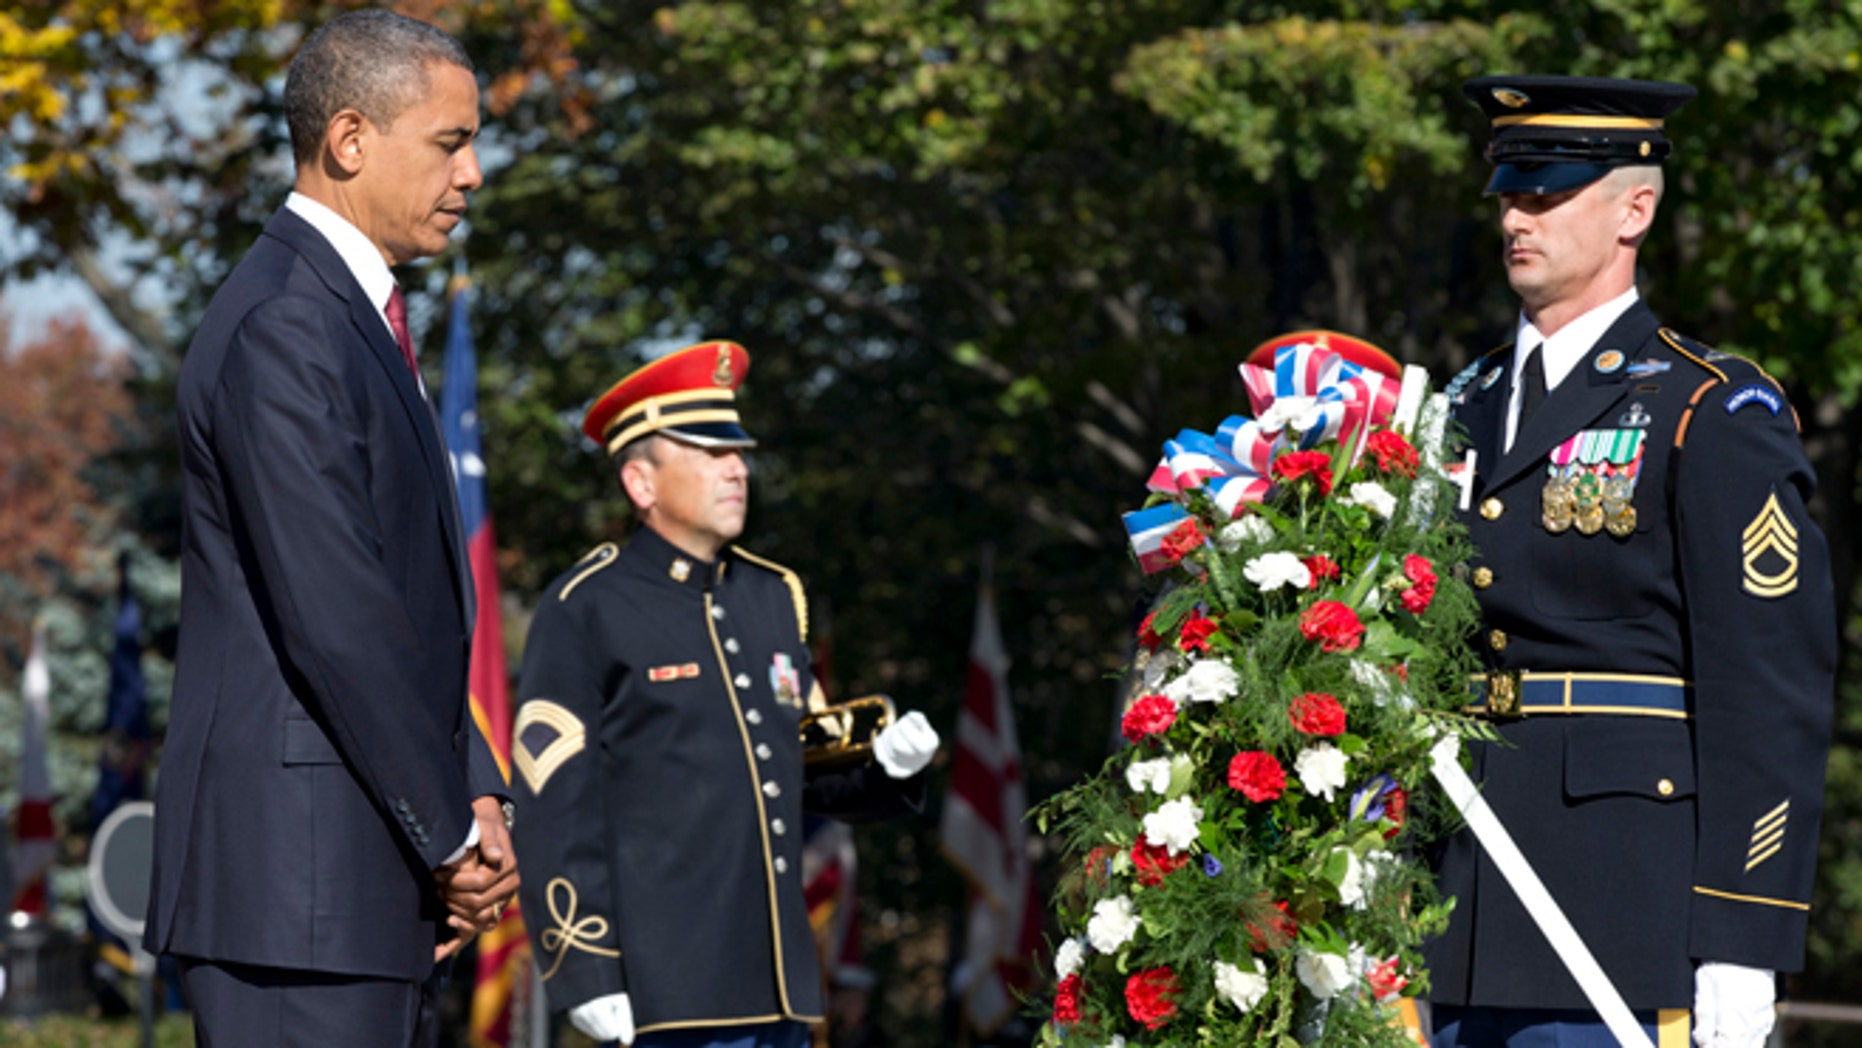 President Obama presenting a wreath at the Tomb of the Unknowns at Arlington National Cemetery during a Veterans Day ceremony in Arlington, Va., in 2012.